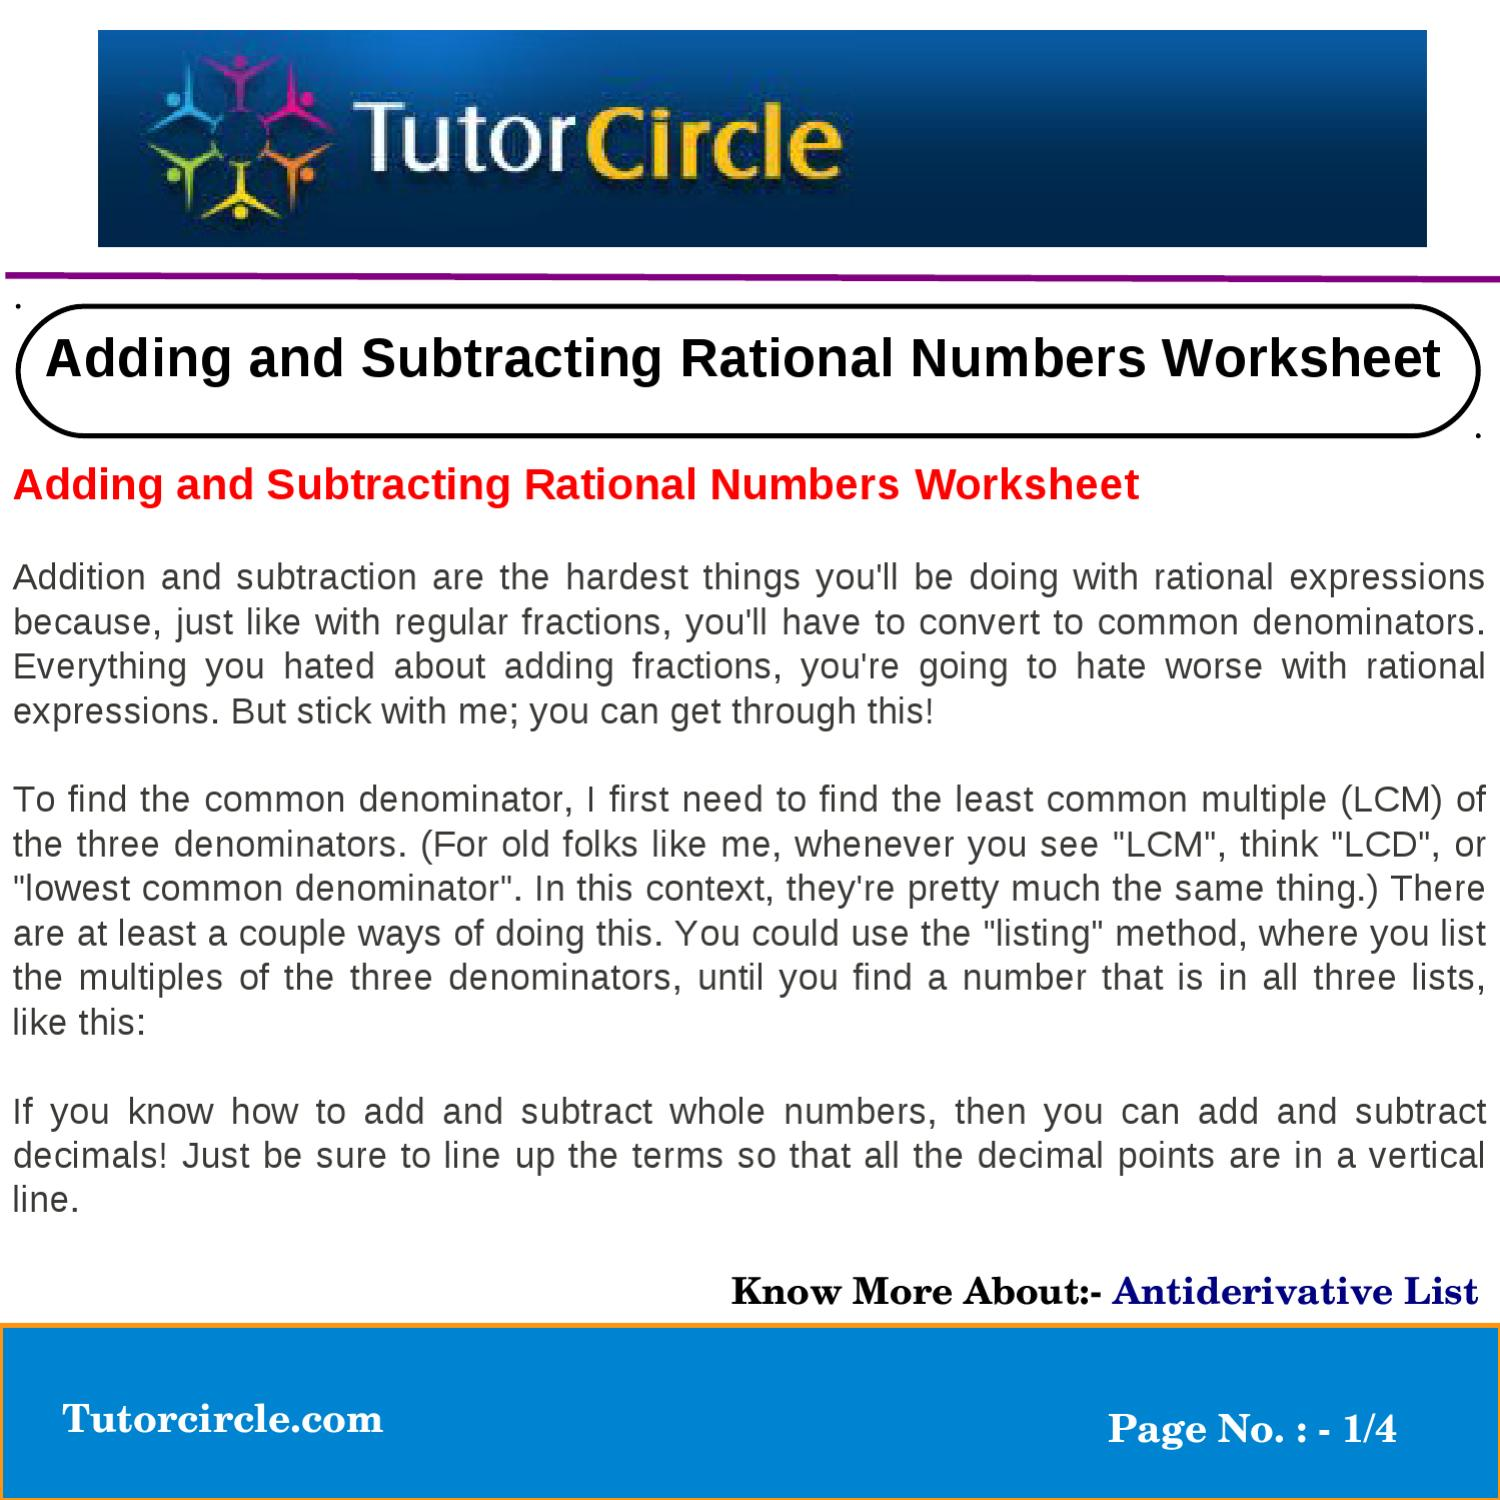 Adding and Subtracting Rational Numbers Worksheet by tutorcircle – Antiderivative Worksheet